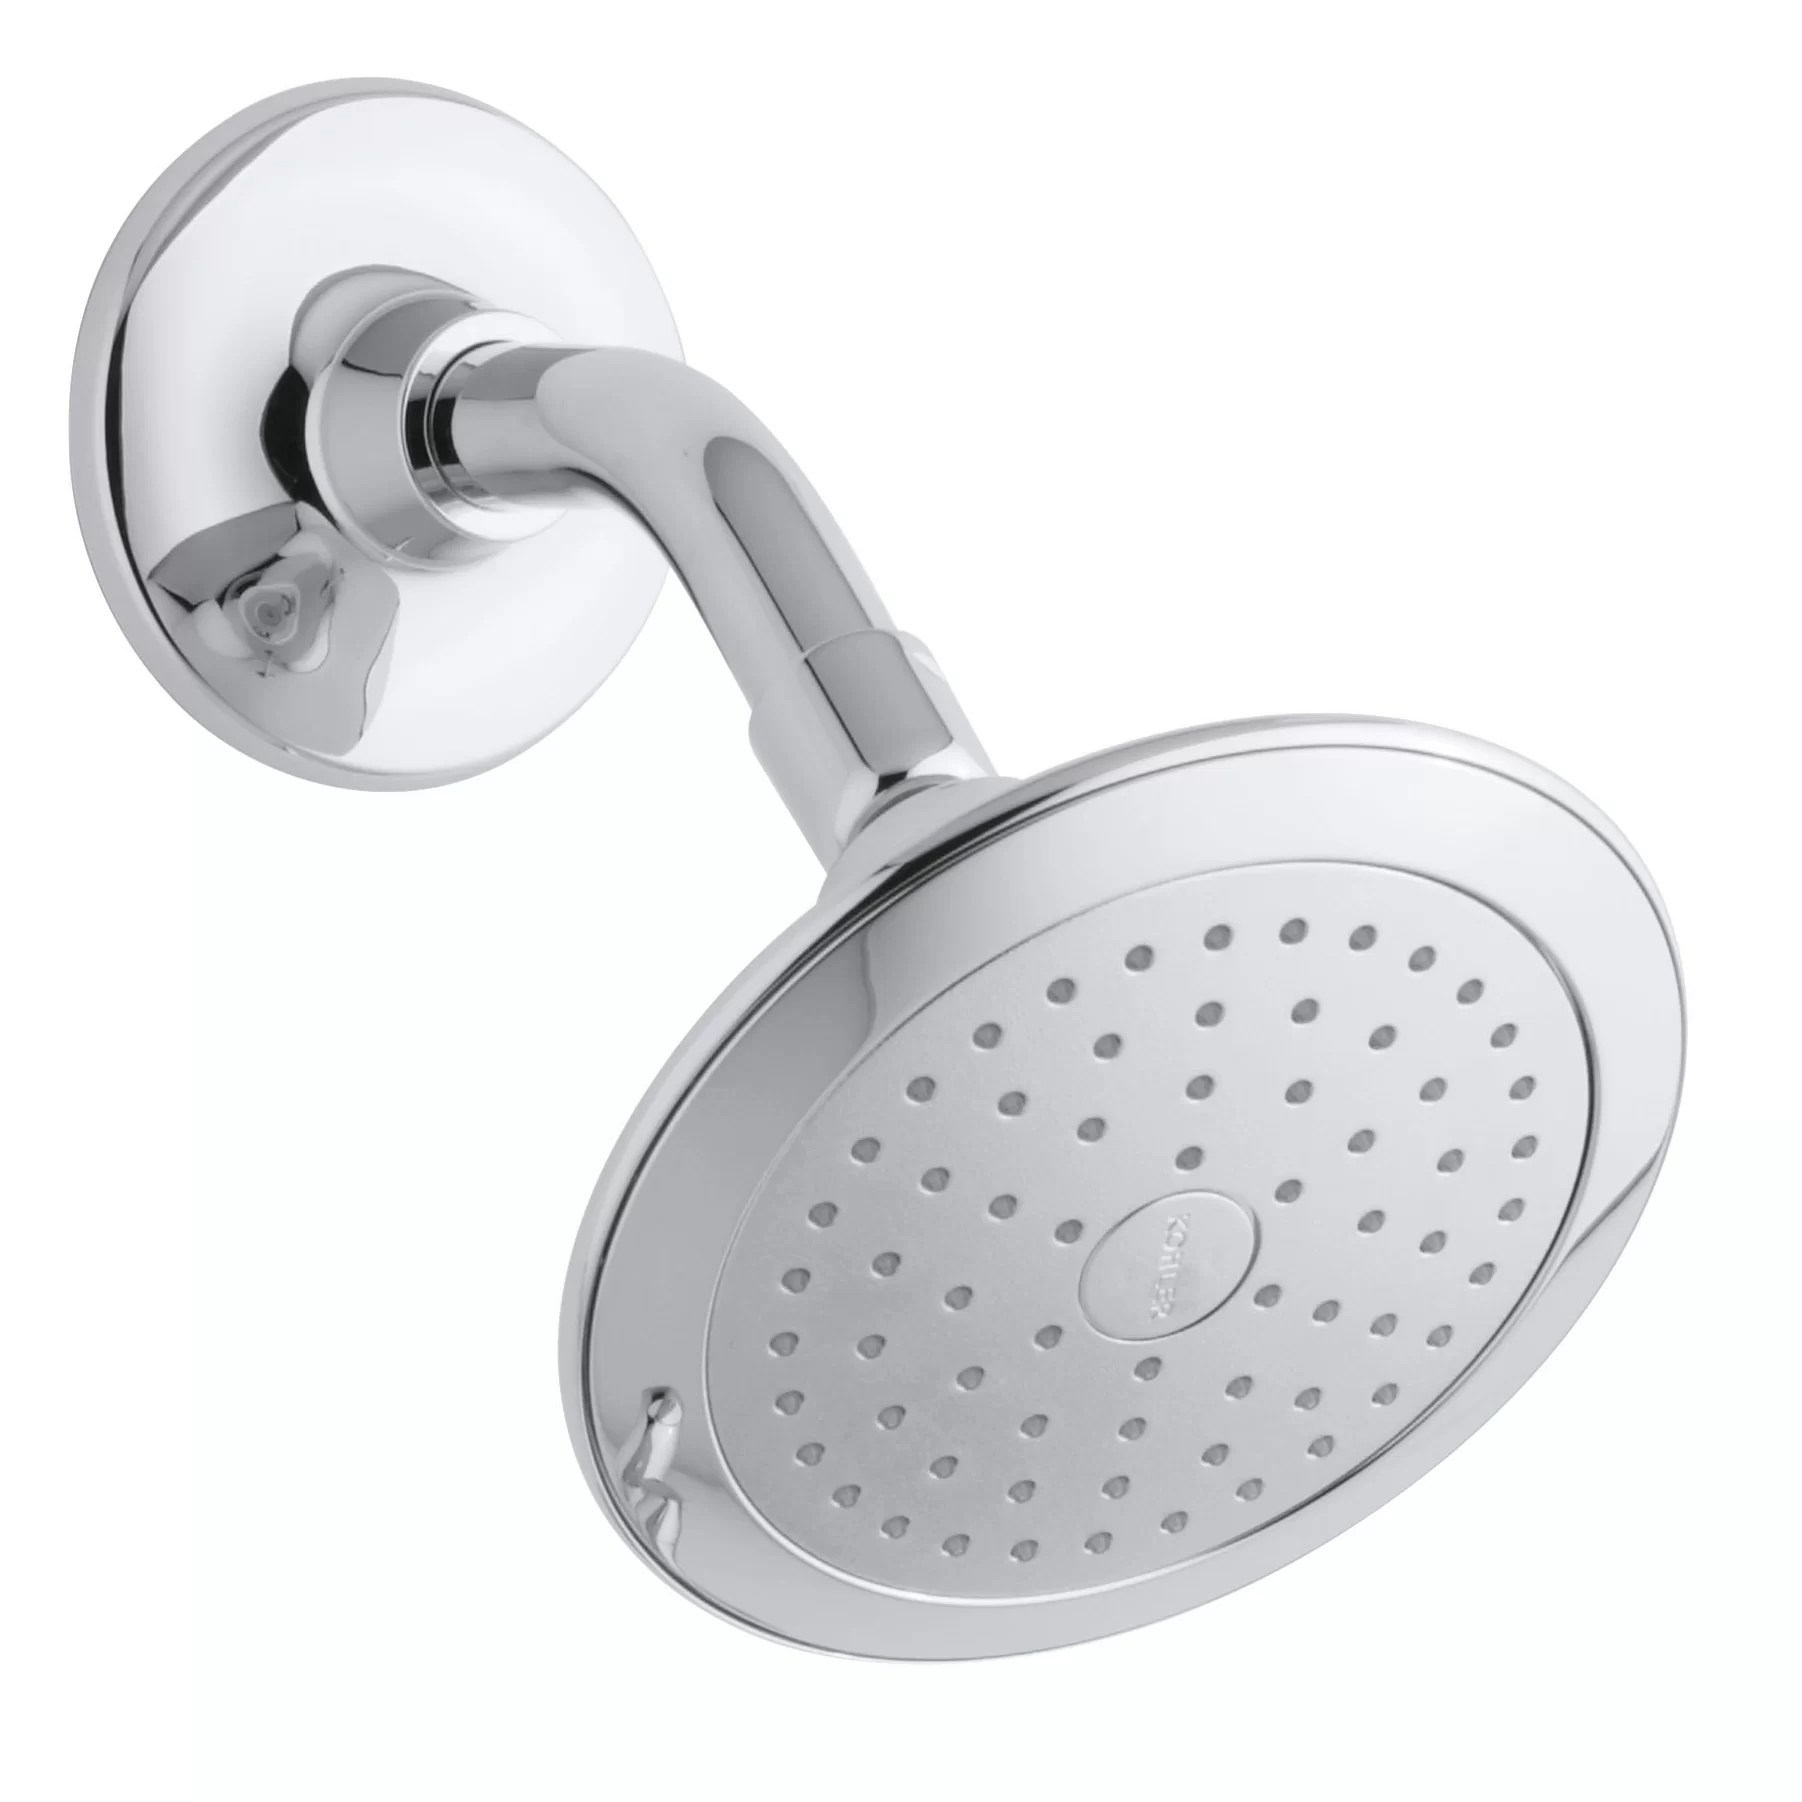 Alteo 2 5 Gpm Single Function Wall Mount Shower Head With Katalyst Air Induction Spray